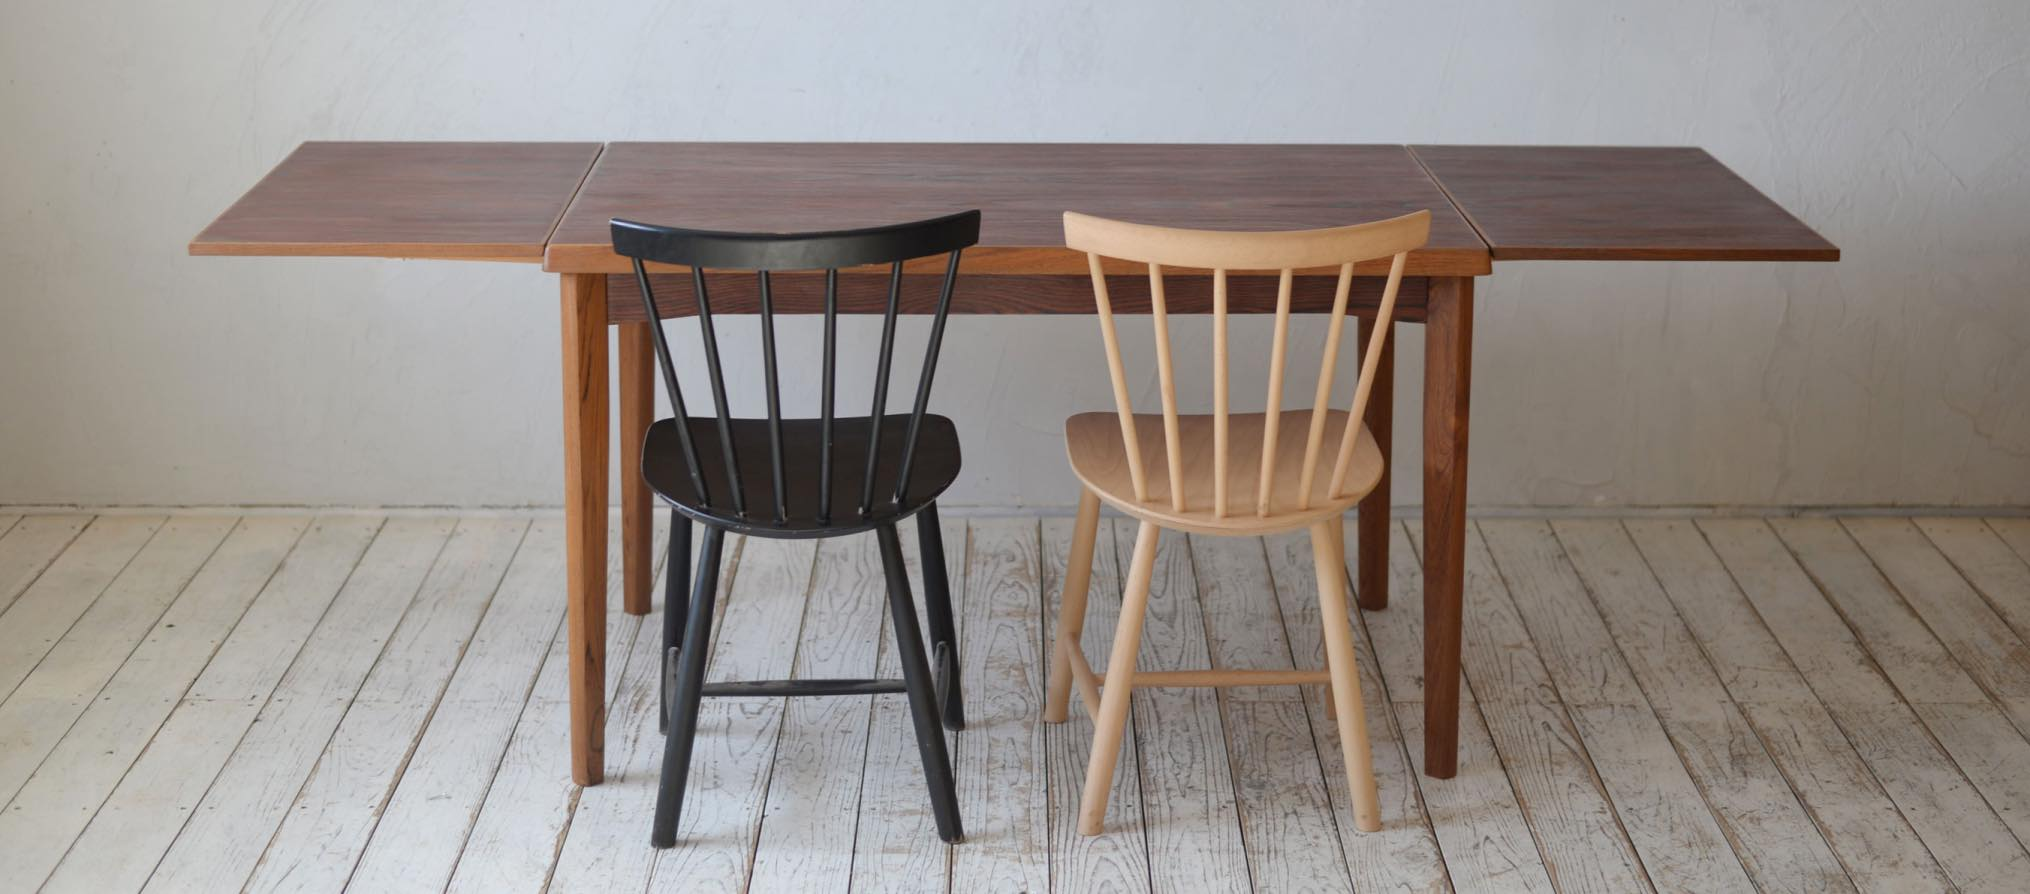 Dining Table D-R212D621_デザイン